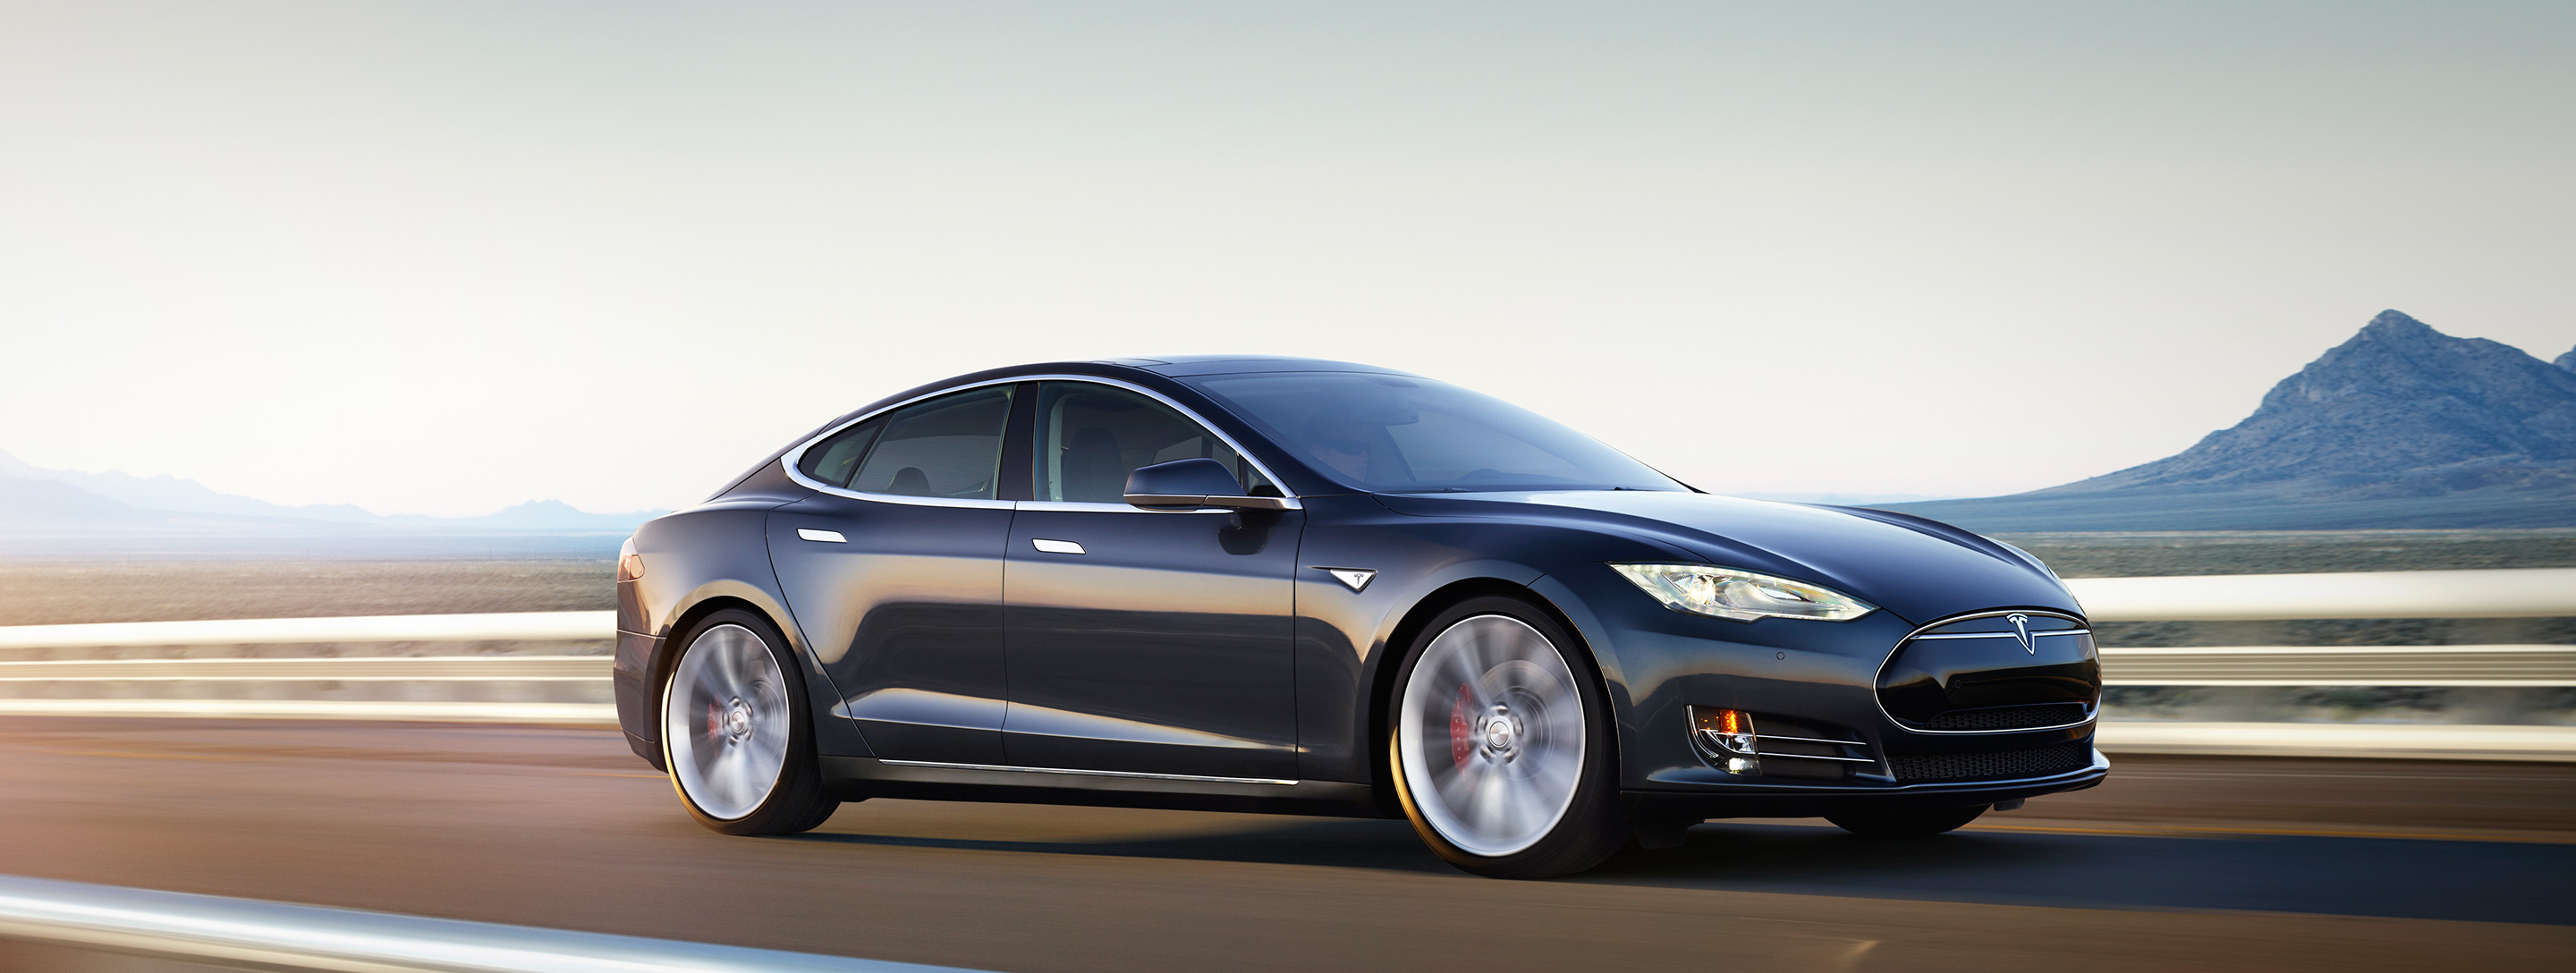 Tesla D 4wd And Up To 700 Electric Horsepower The